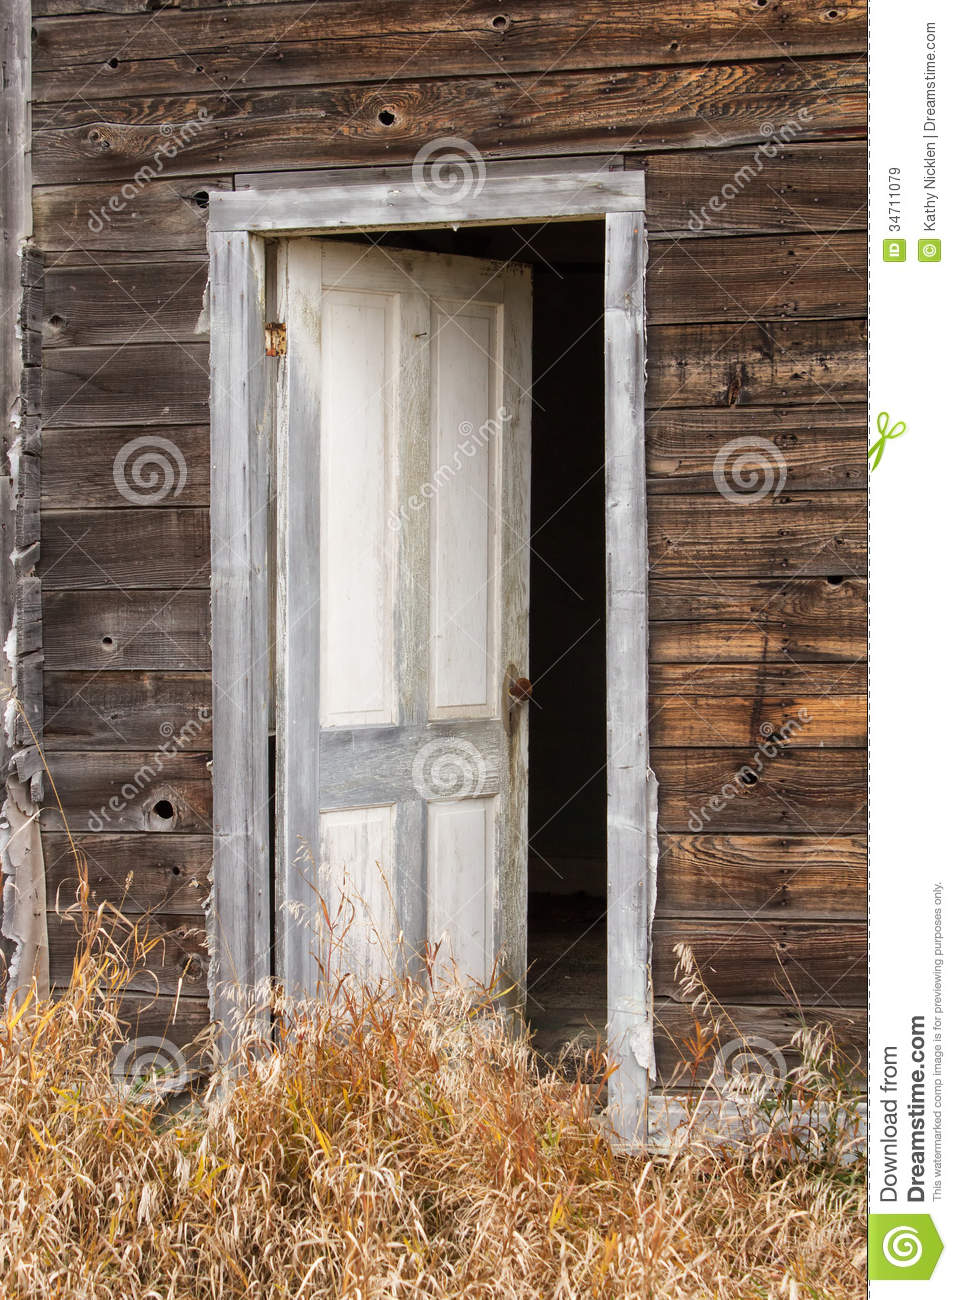 A White Wood Door Standing Ajar Stock Image Image Of